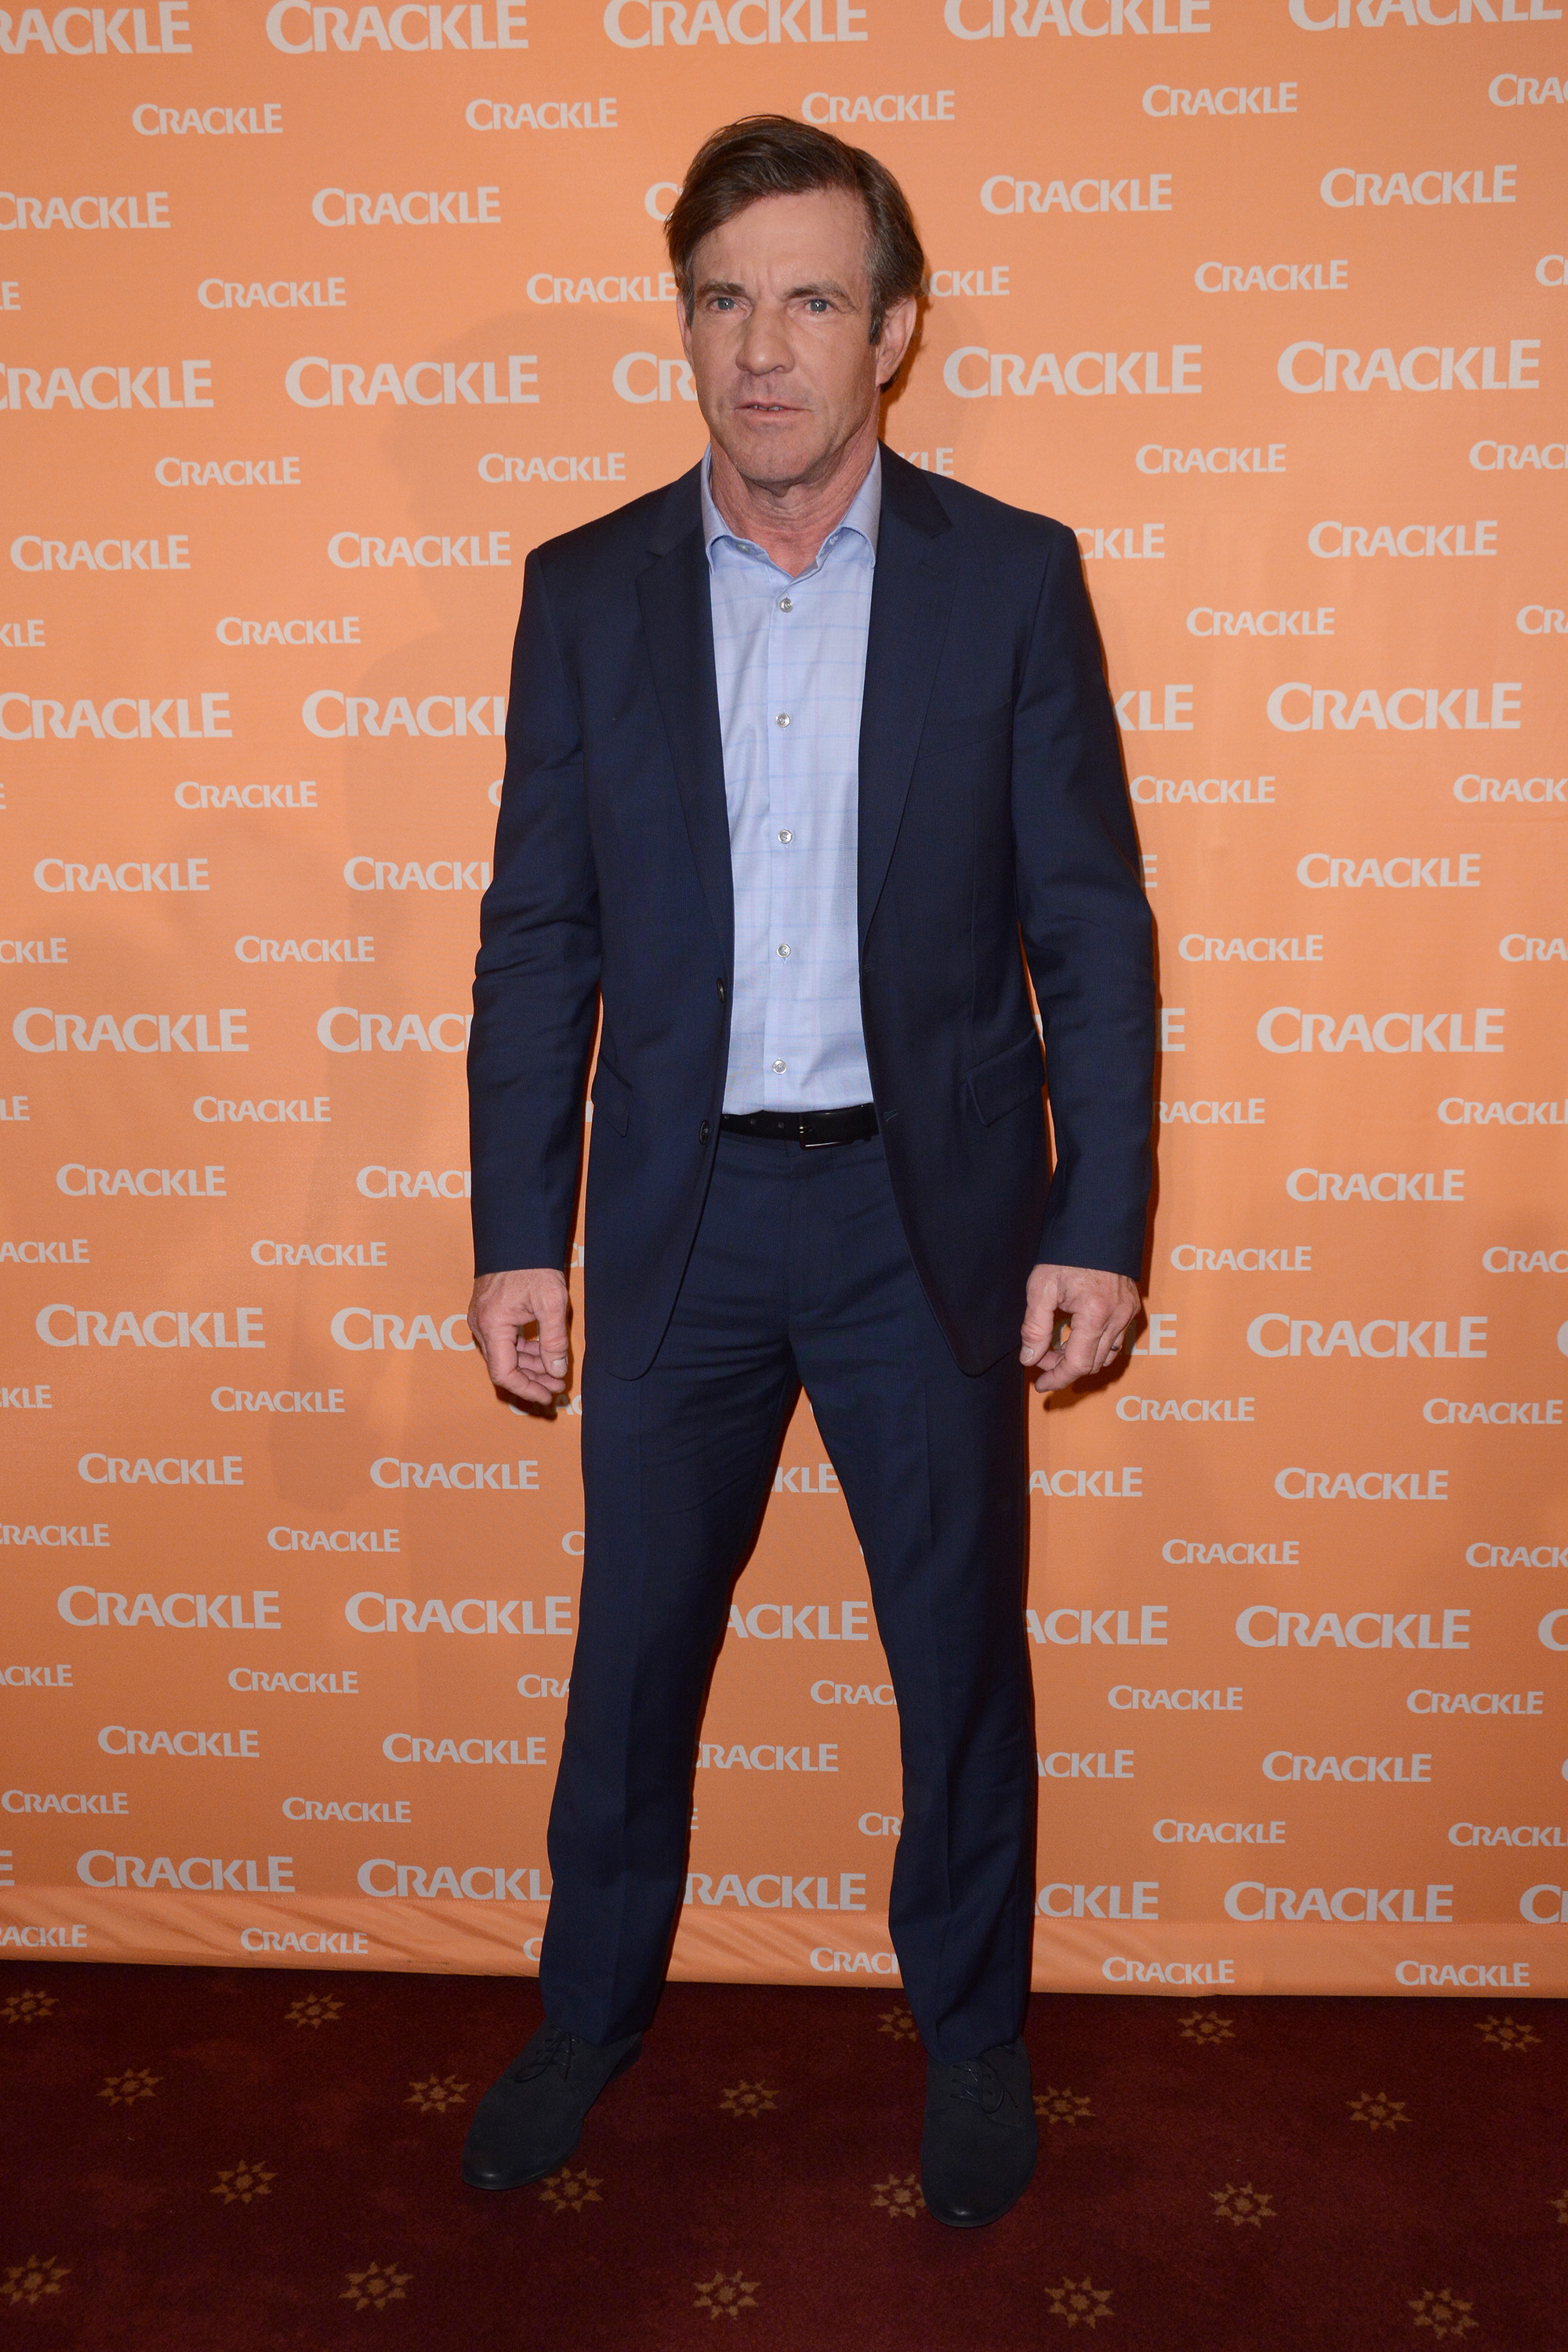 Dennis Quaid arrives at the Crackle Upfront Presentation in New York, April 20, 2016. (Ivan Nikolov/WENN)